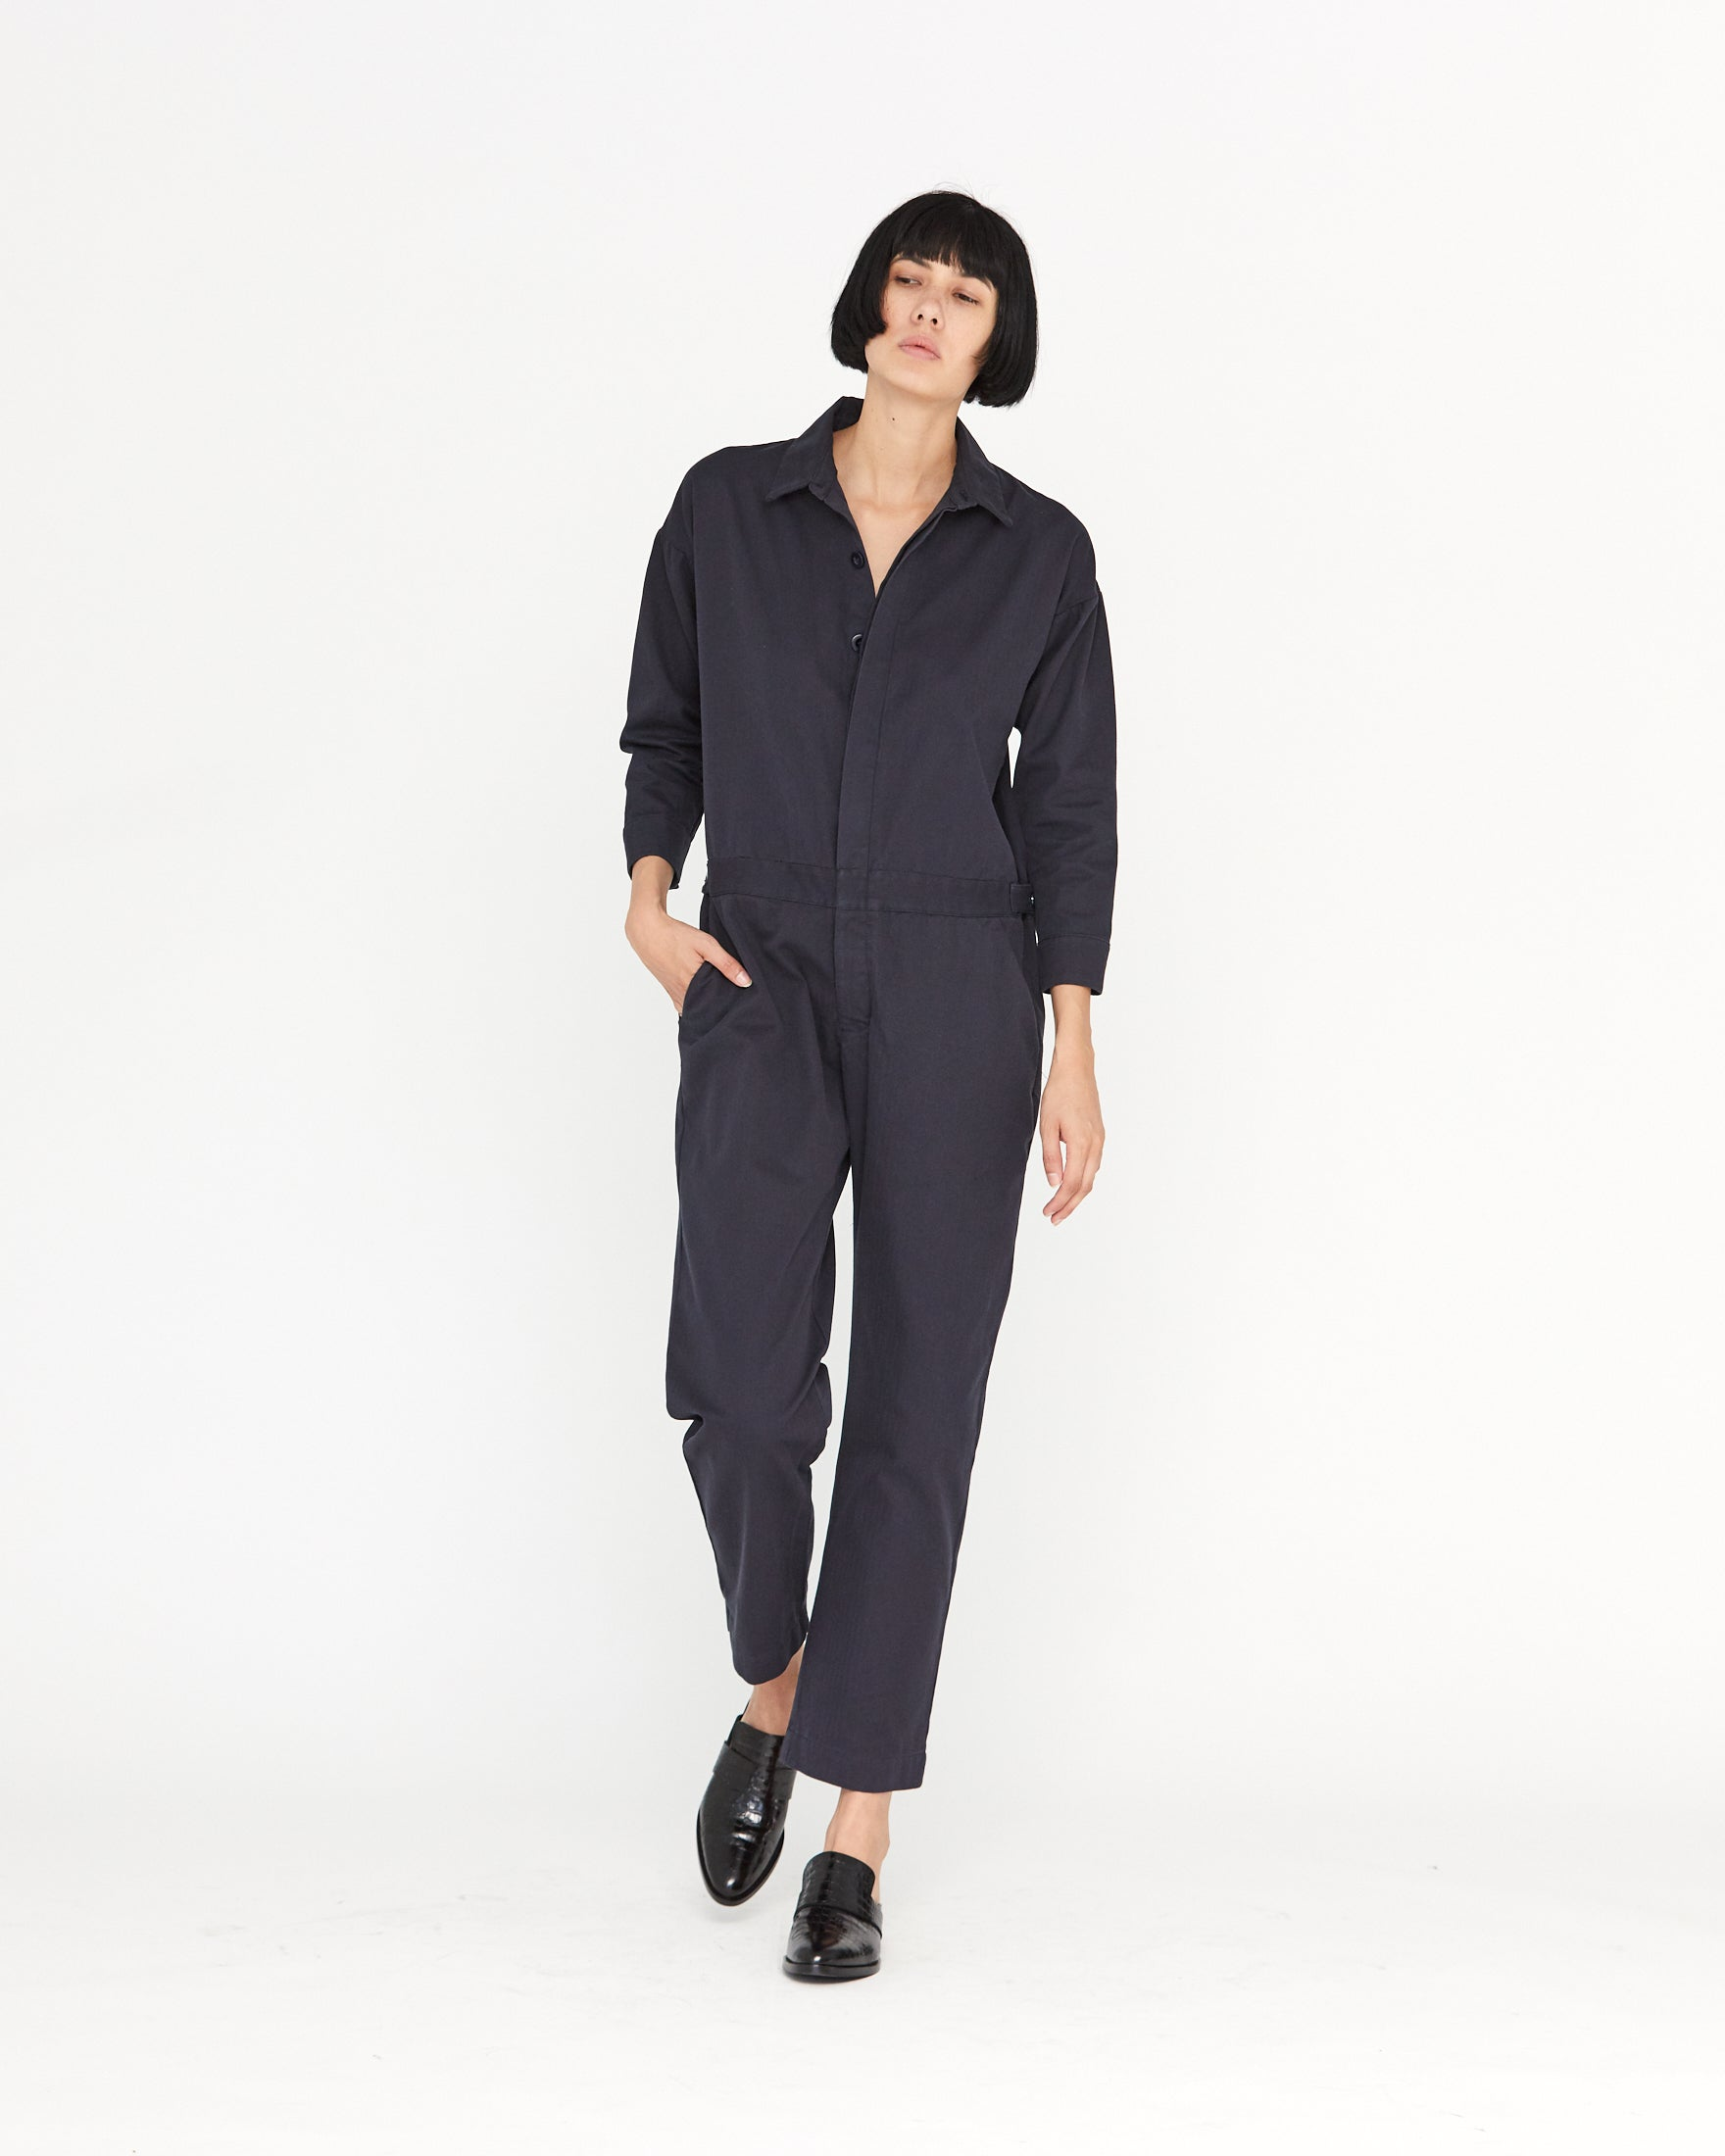 CHARLIE WORKWEAR JUMPER - MIDNIGHT